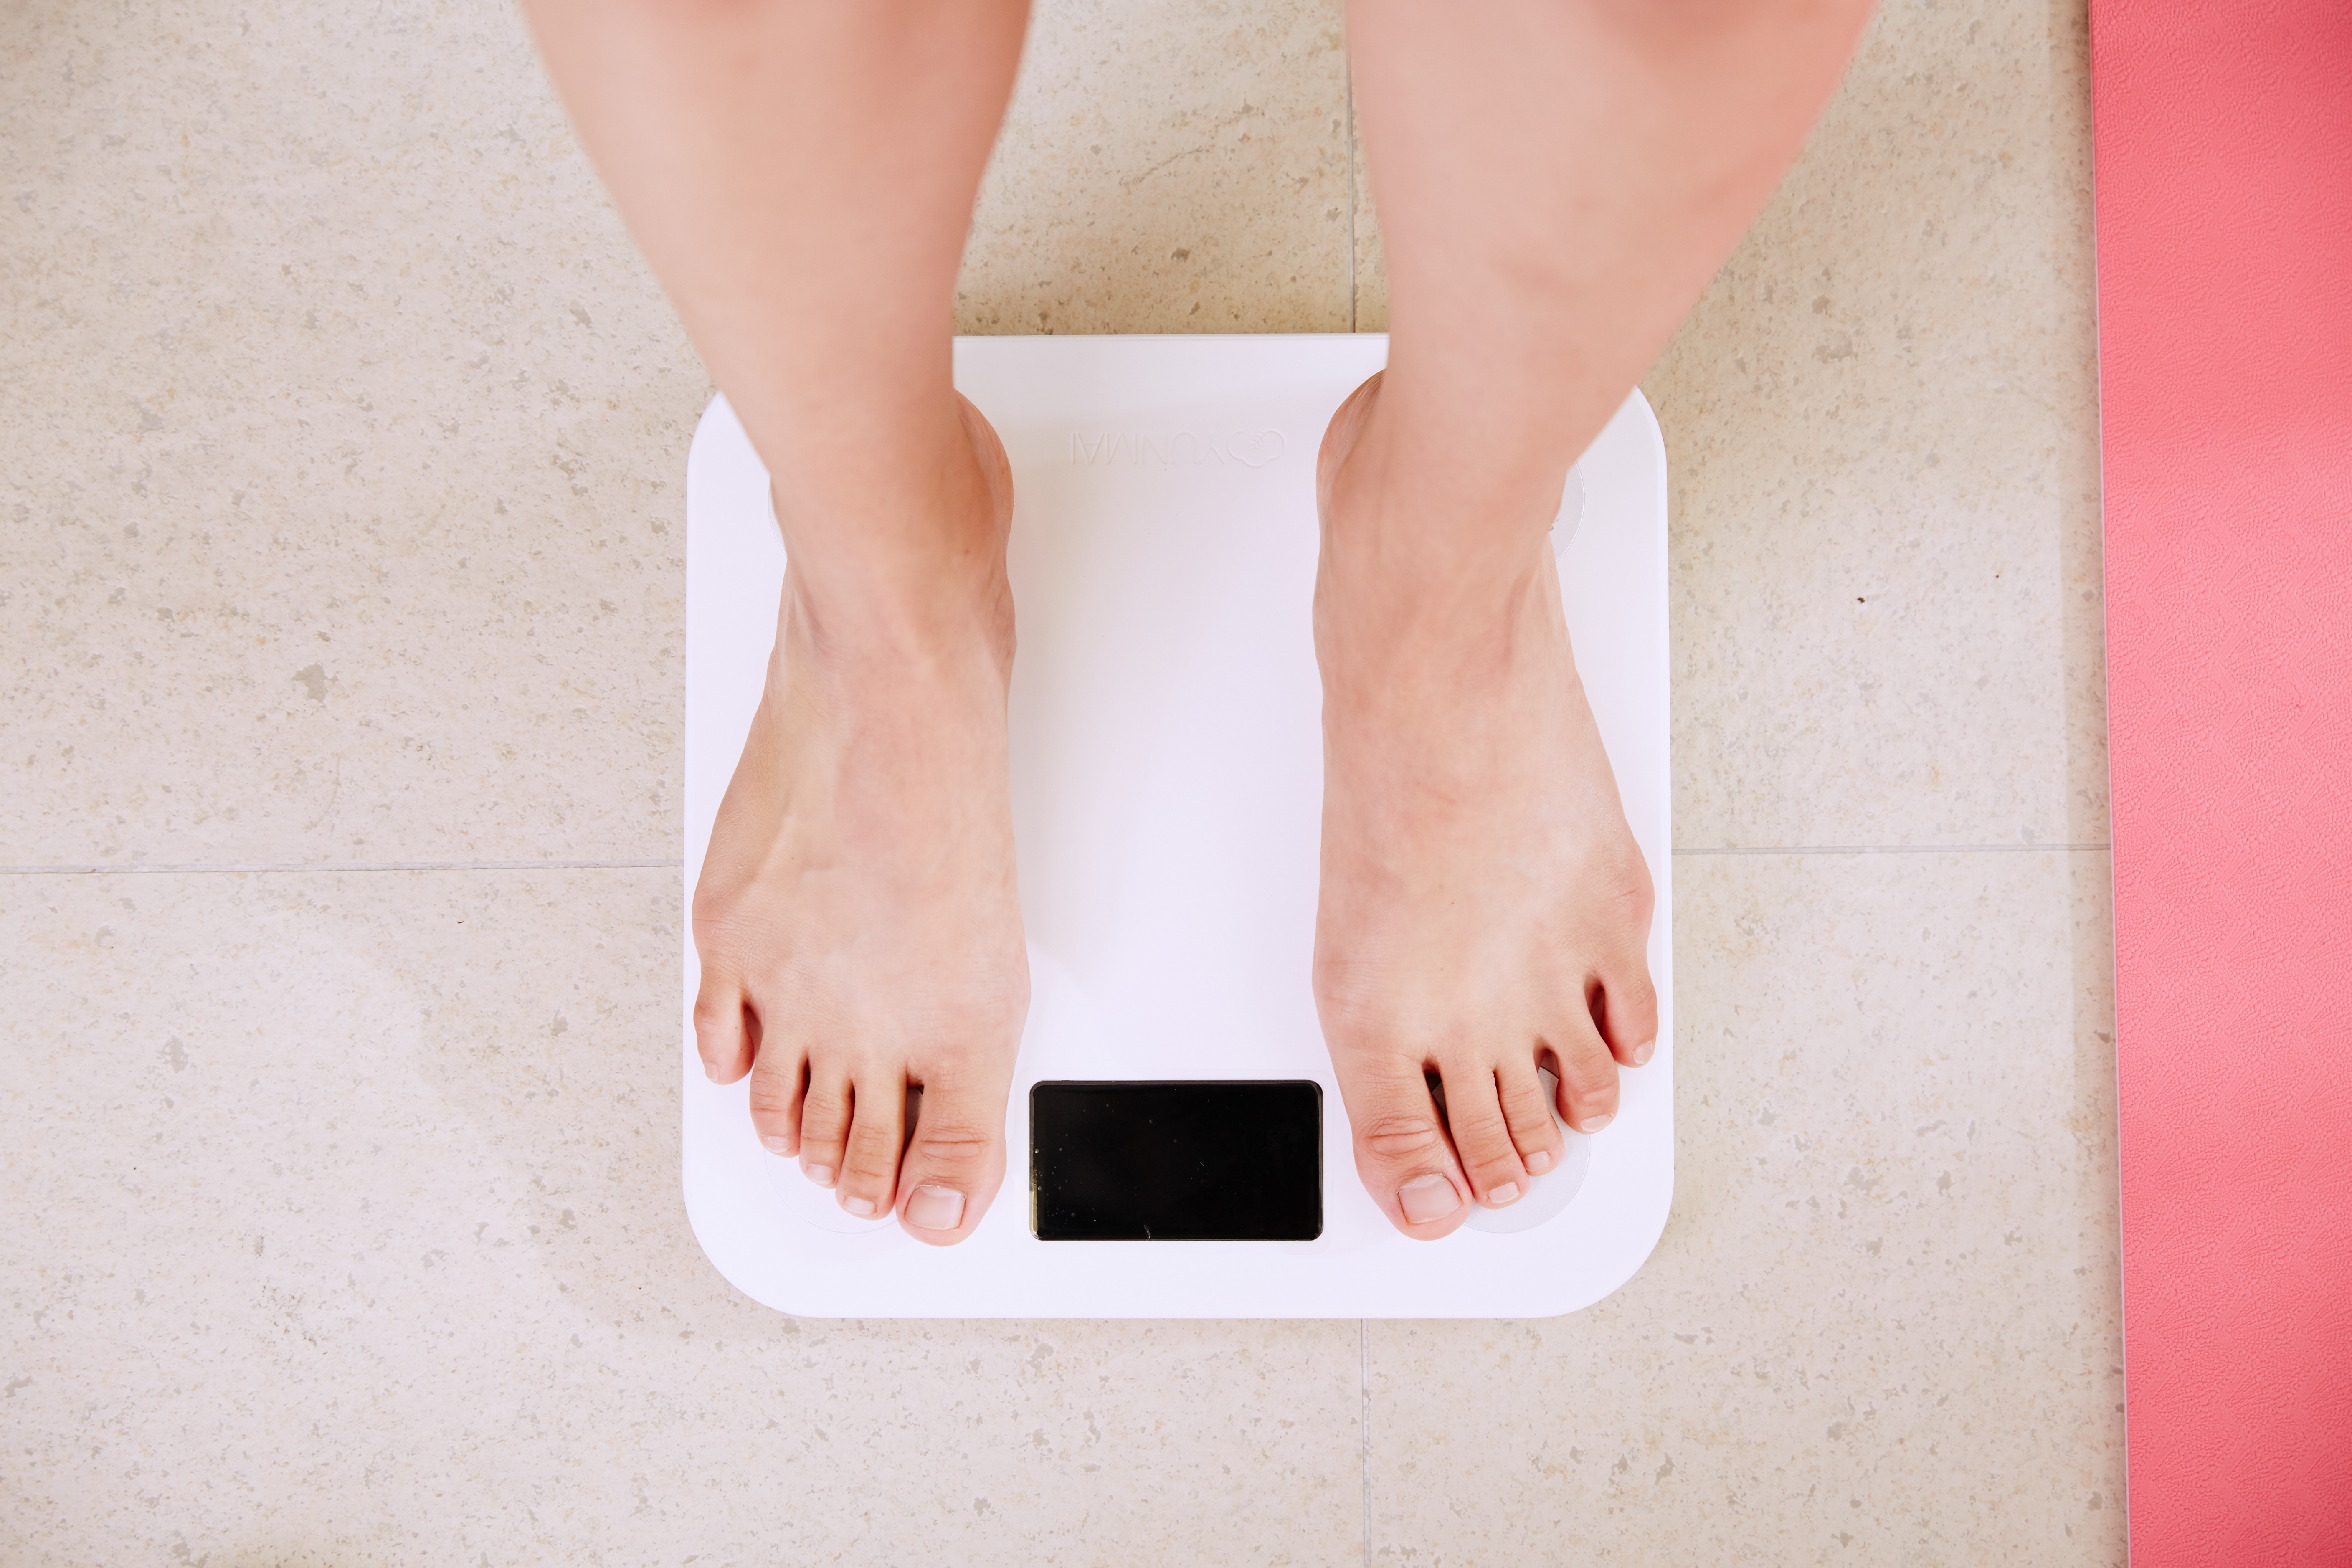 Weighing the Risks - Exploring the Link Between Obesity and Cancer